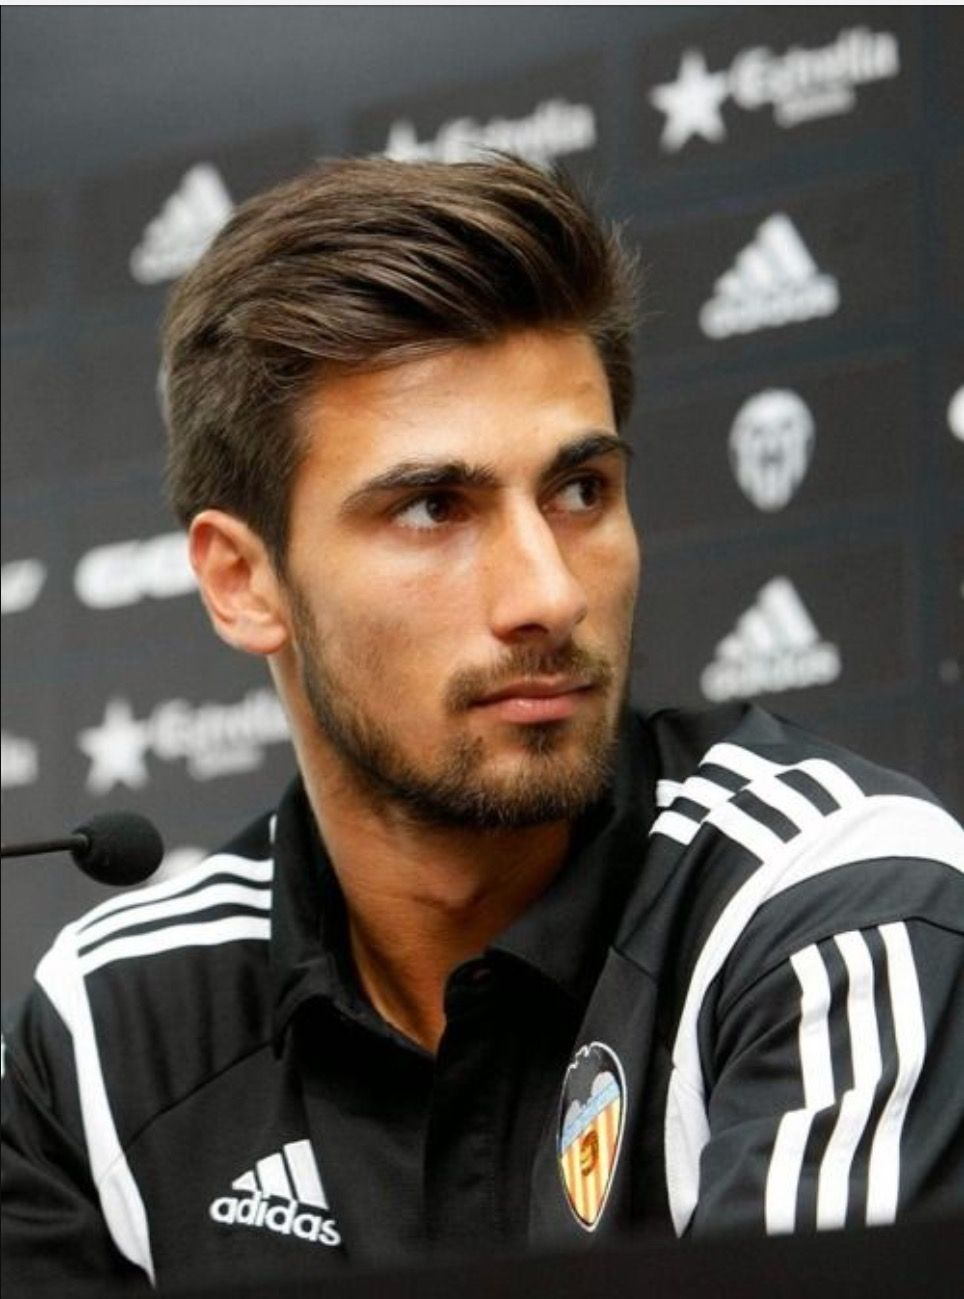 Andre Gomes Football Player Andre Gomez Soccer Player